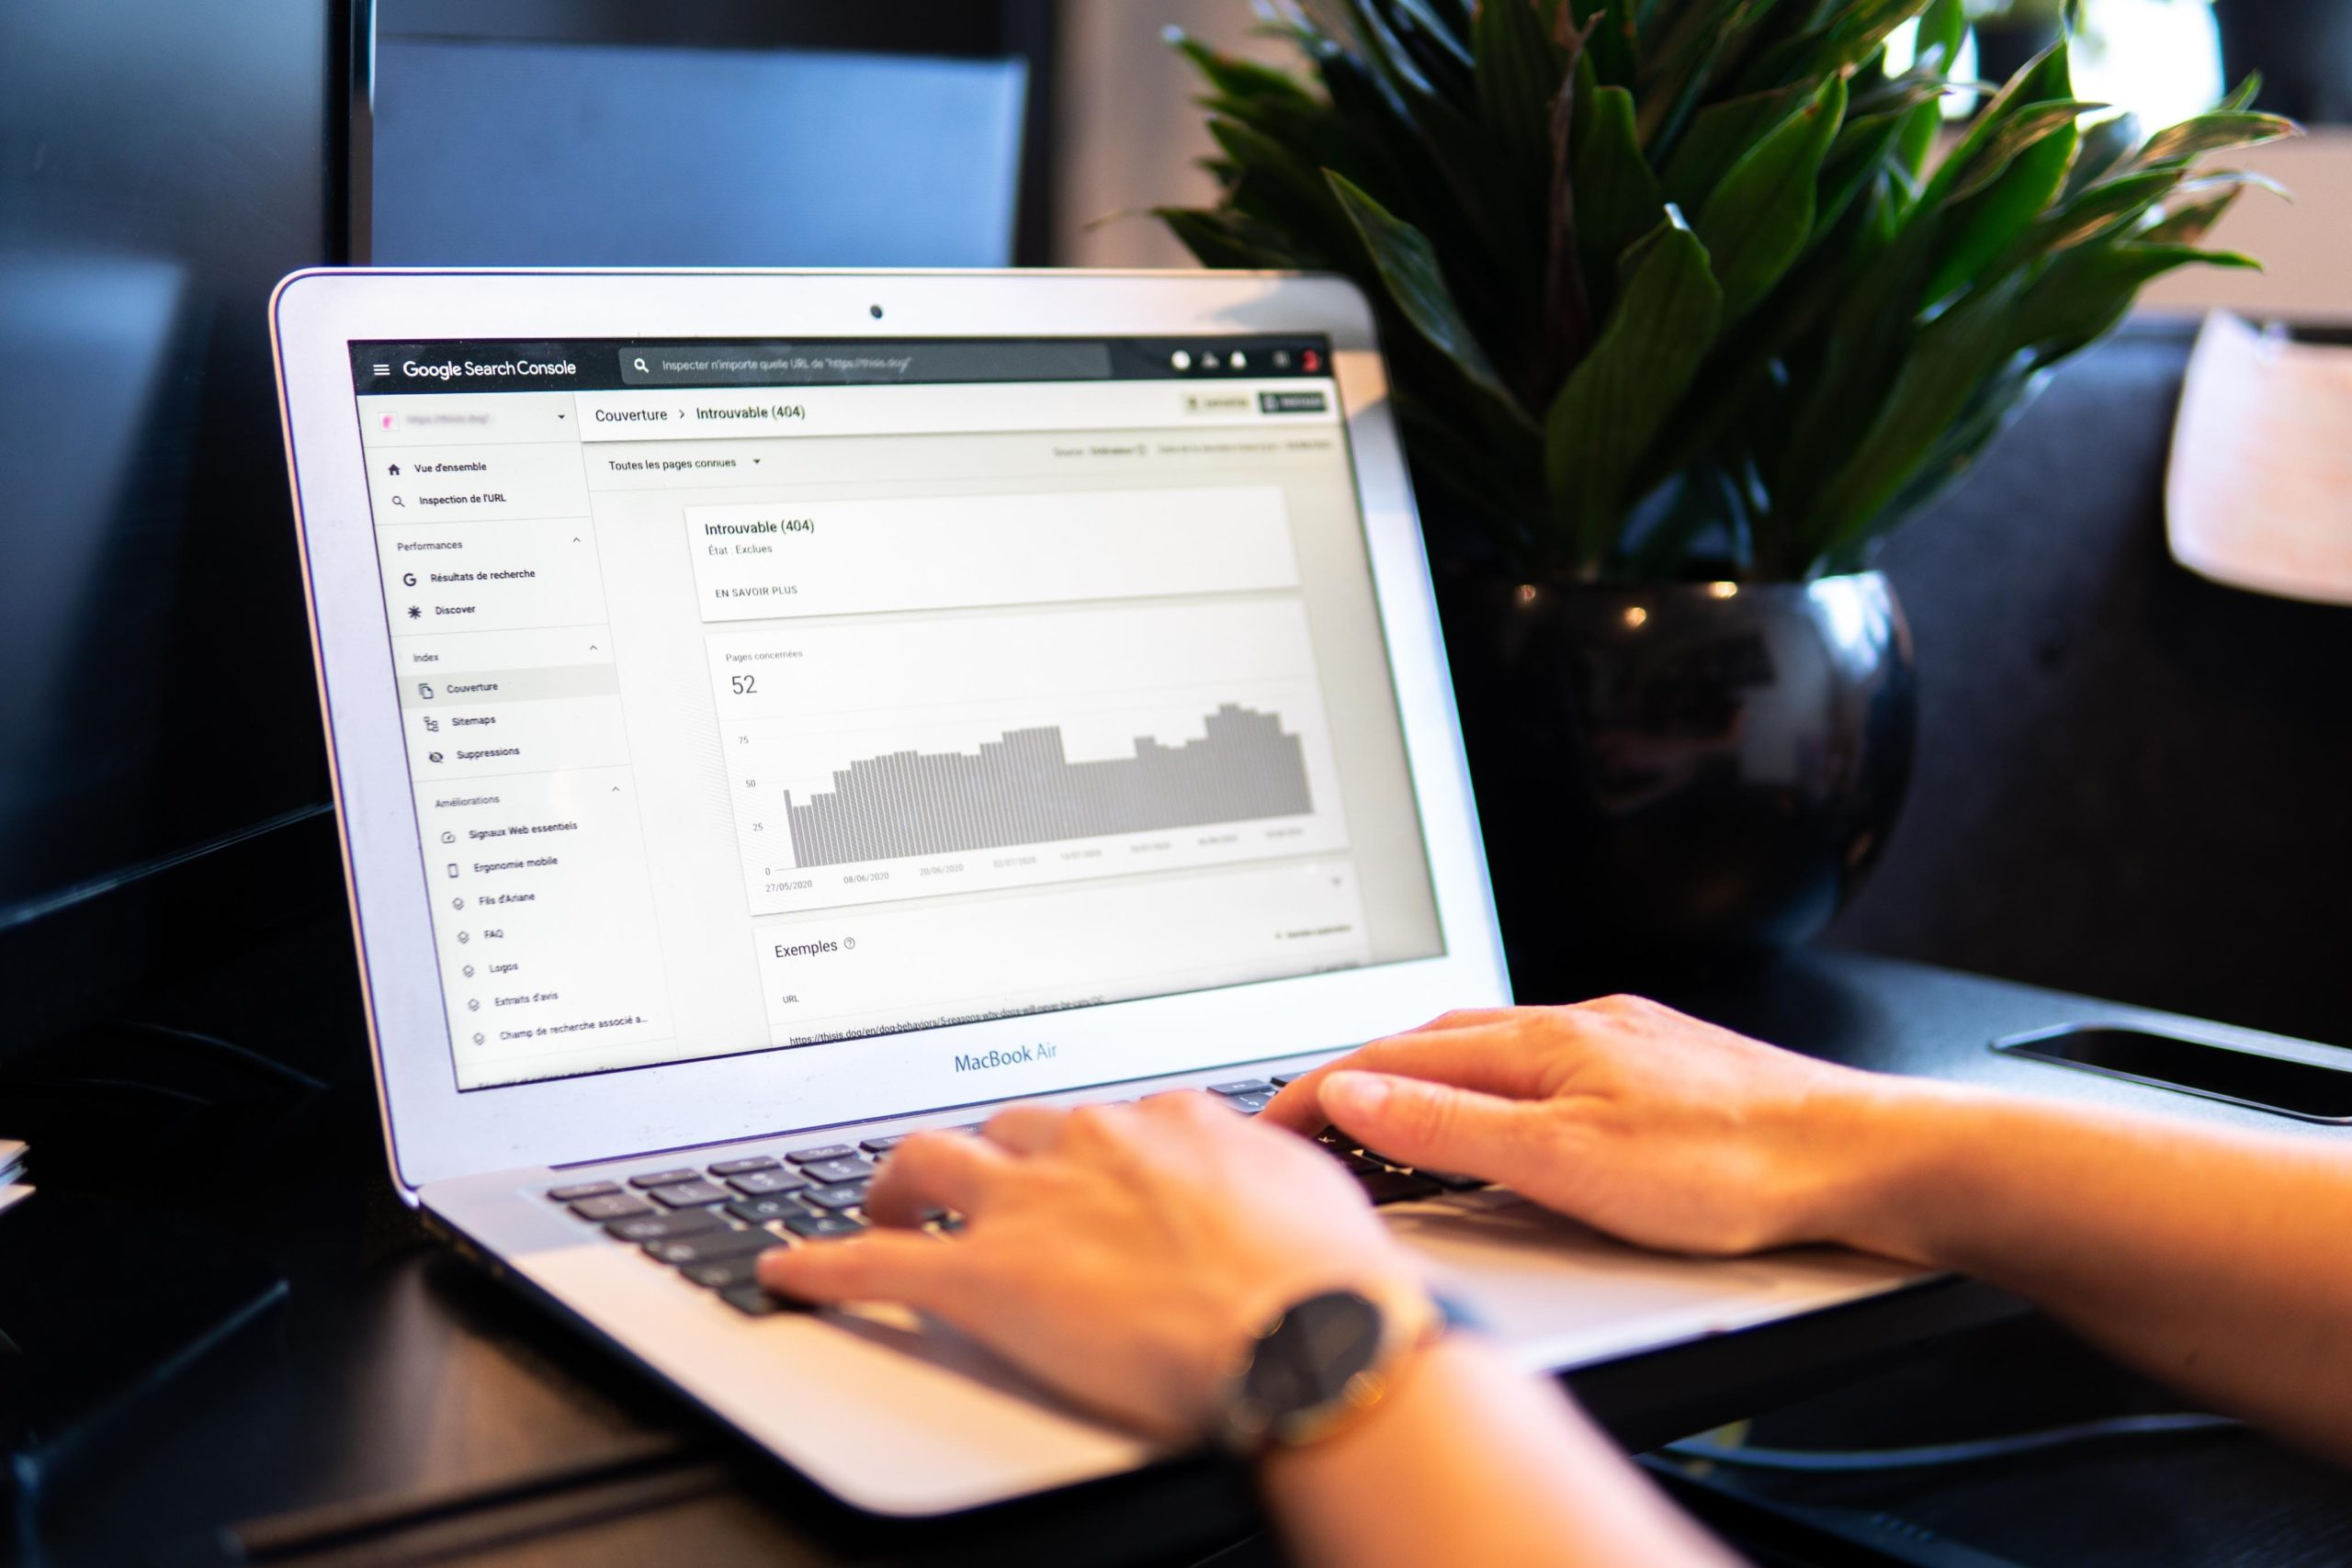 hands typing while on an analytics screen